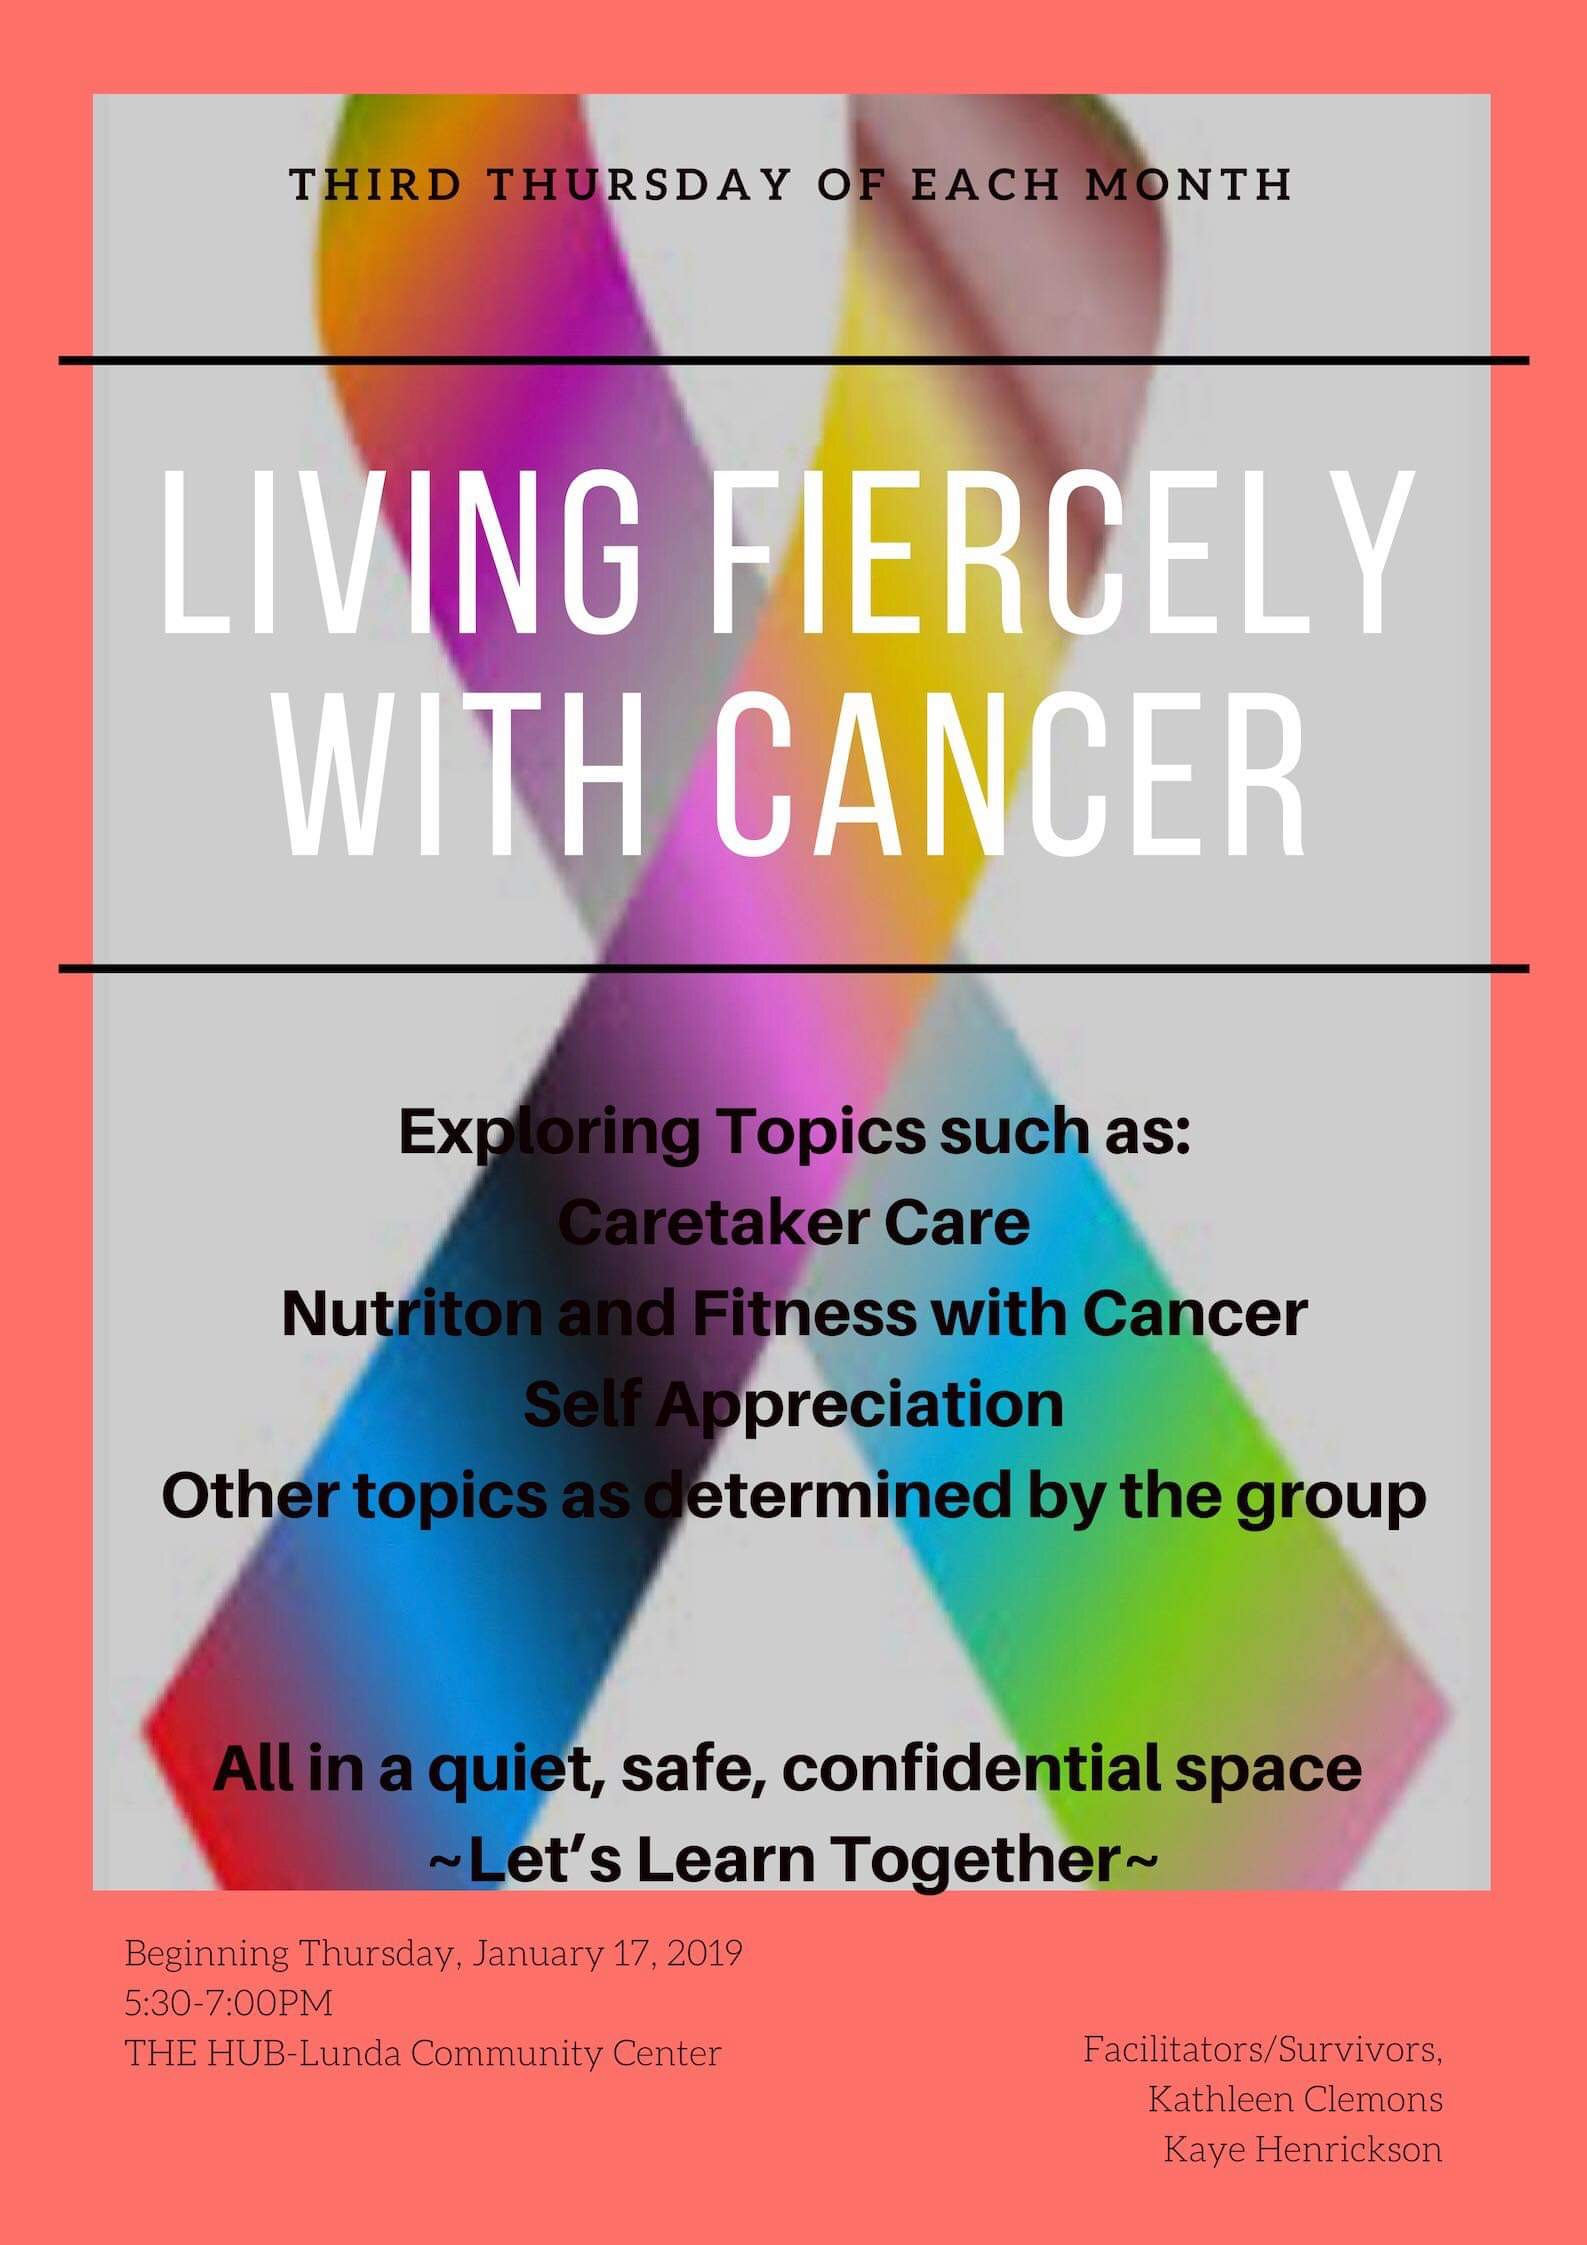 Cancer Support Group Poster.jpg